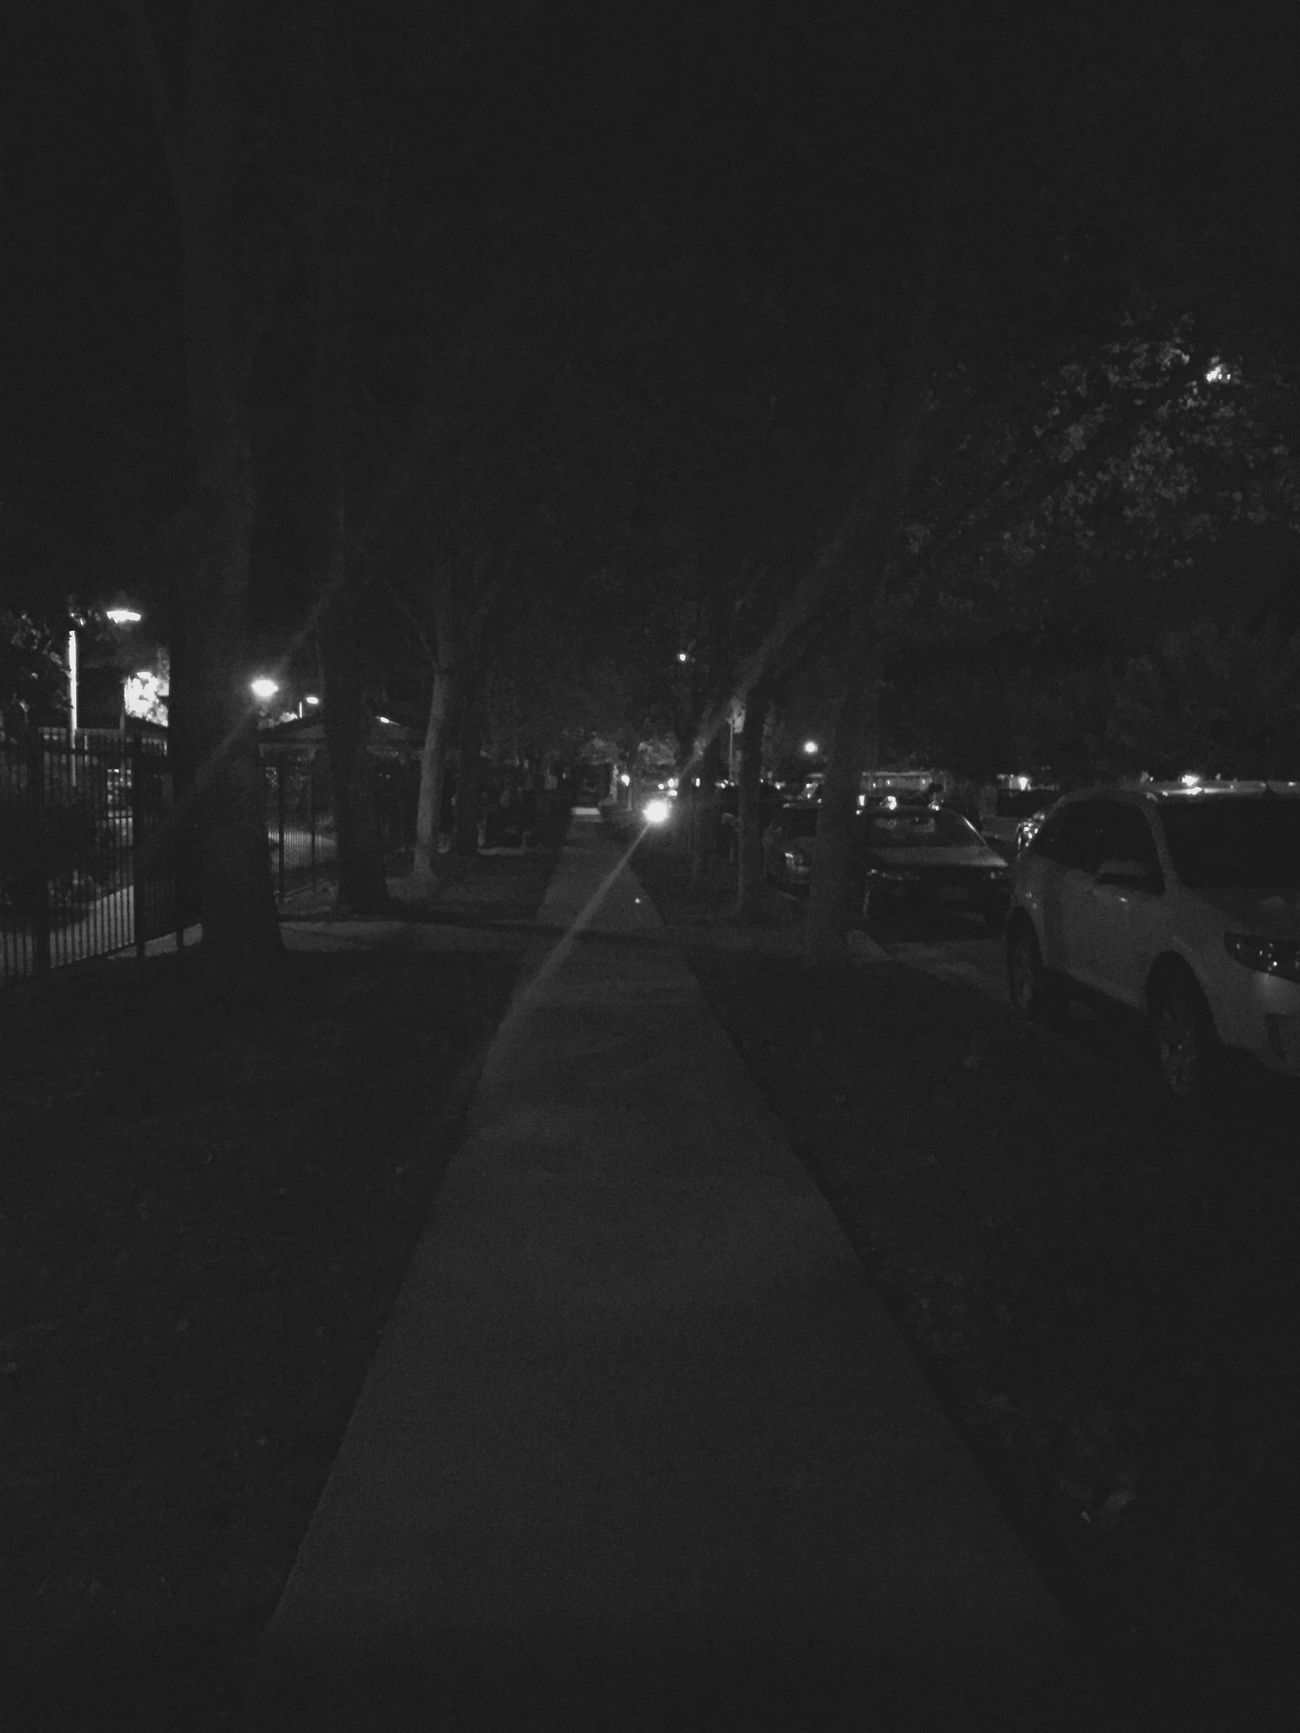 those lonely walks home are the best Walking Around Night Thoughts Dark af AtPeace